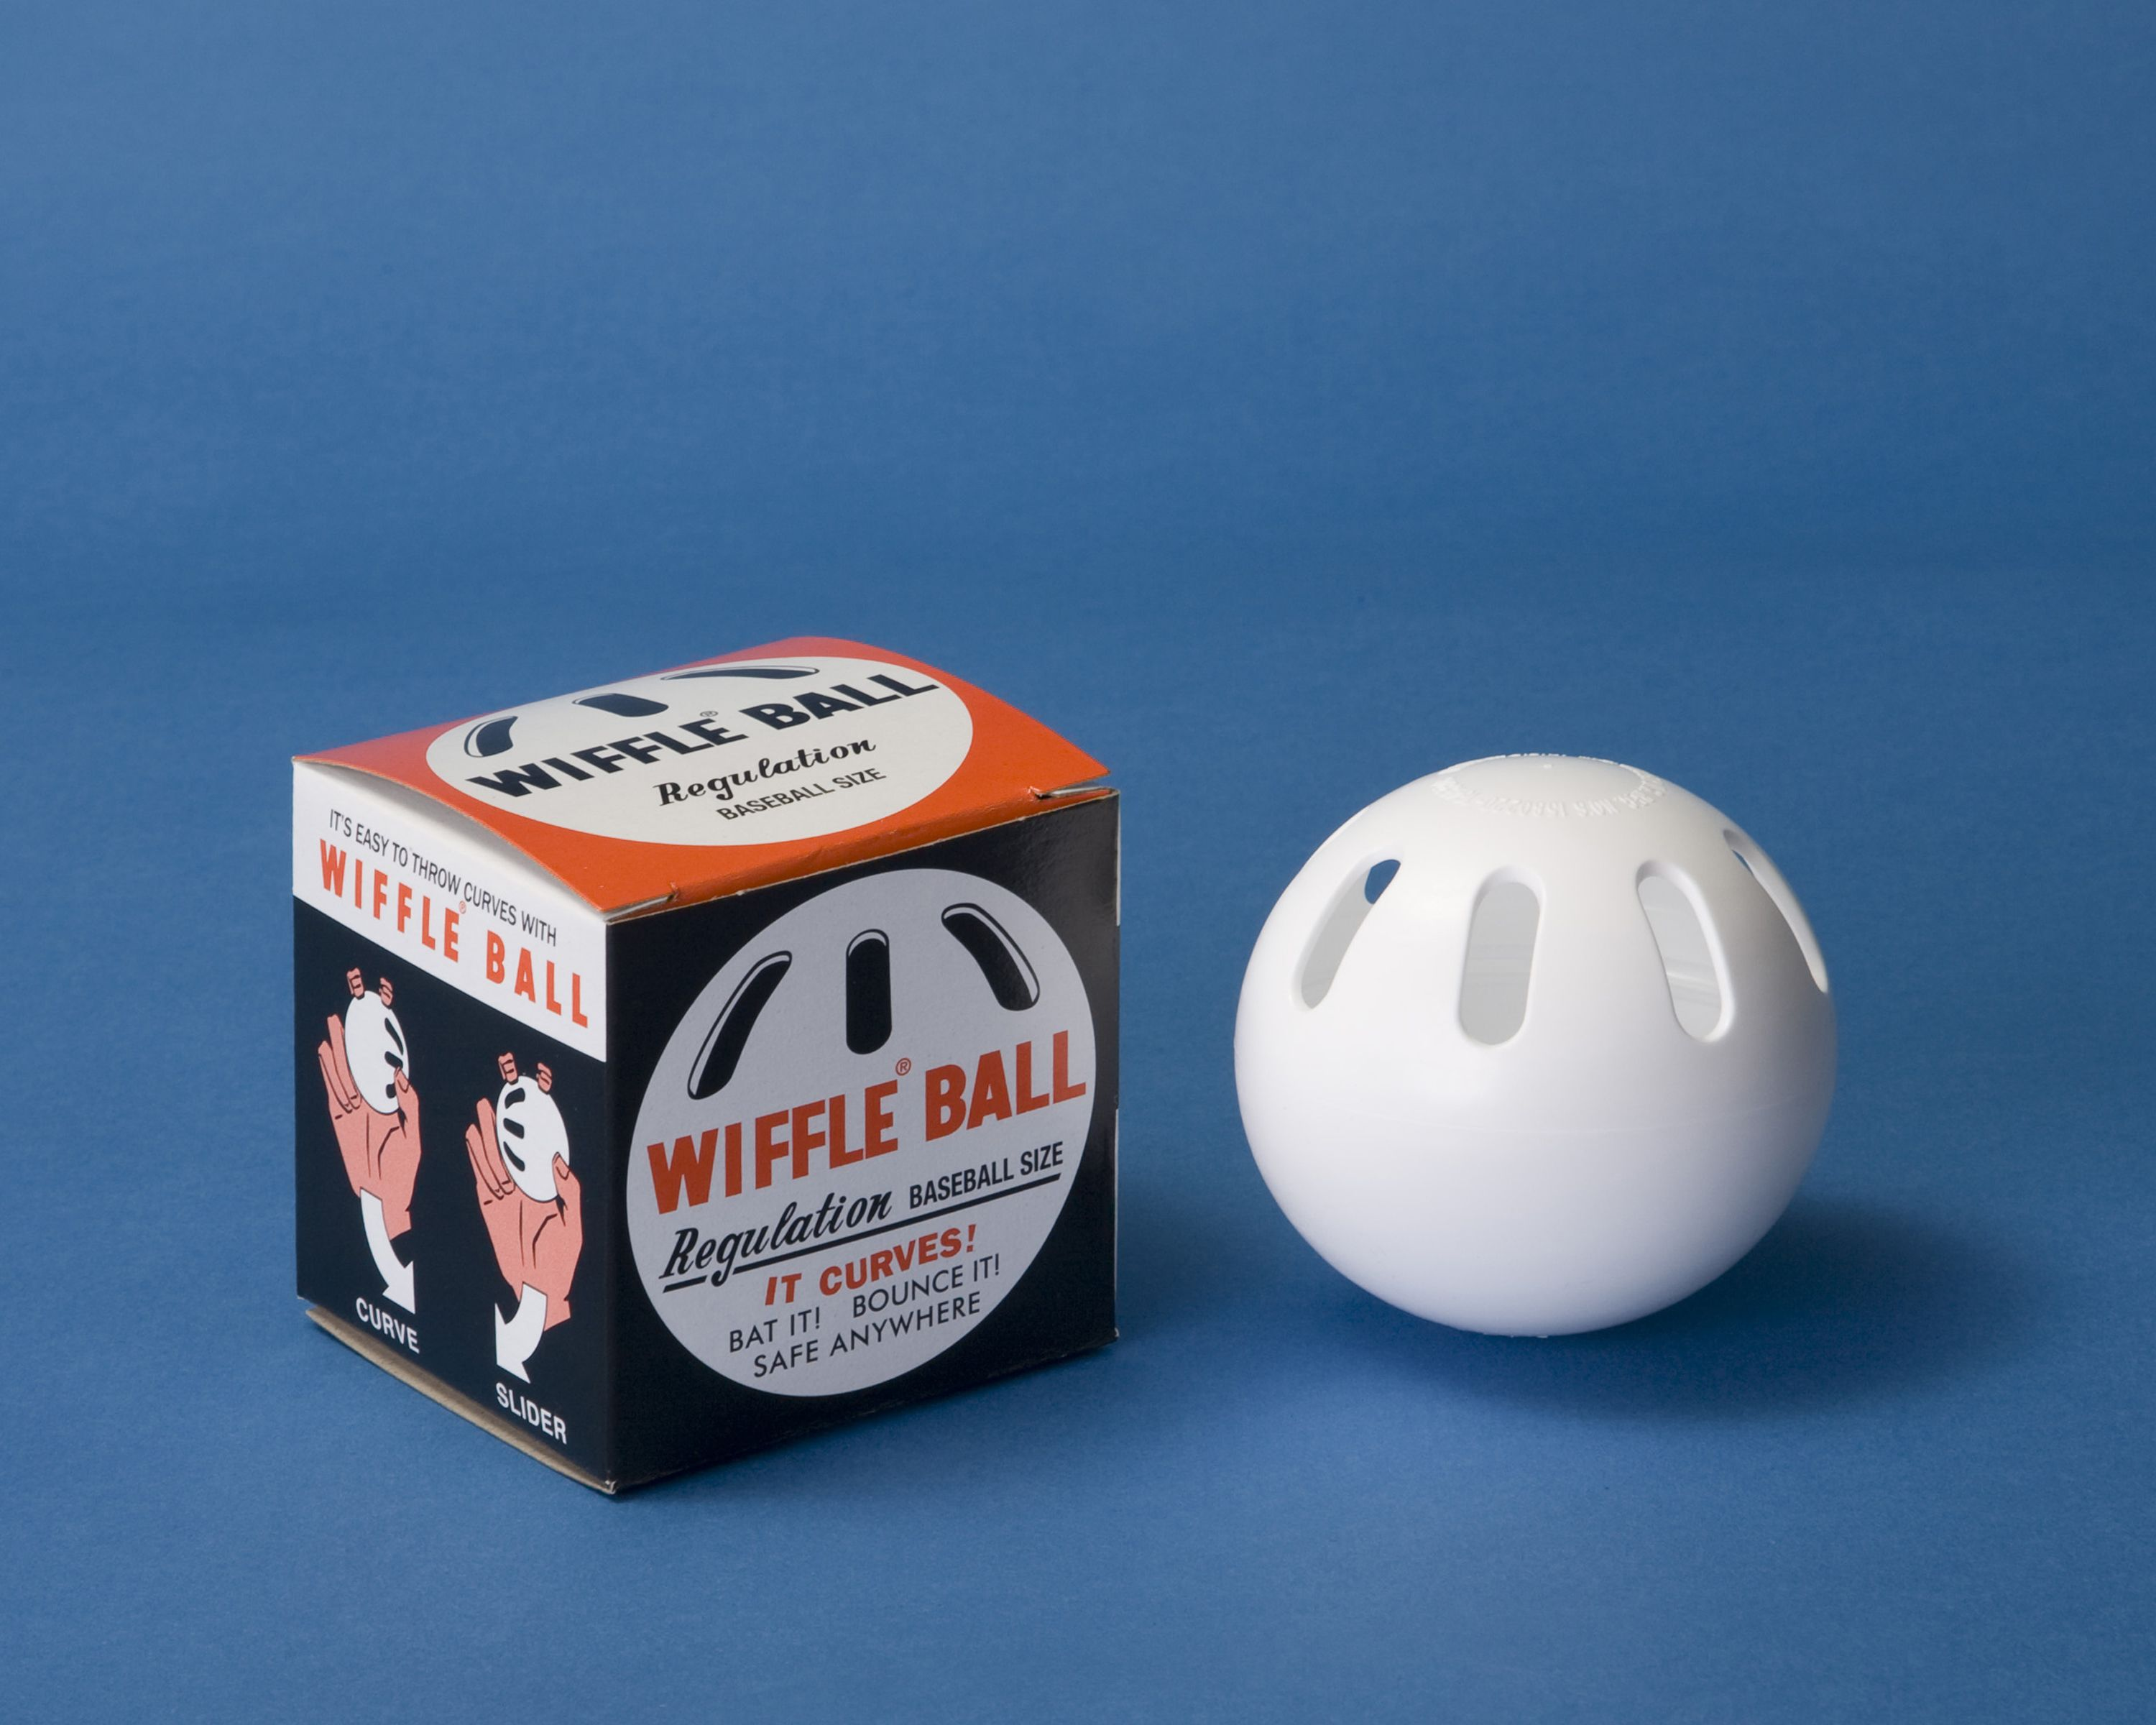 wiffle ball wiffle ball products pinterest wiffle ball